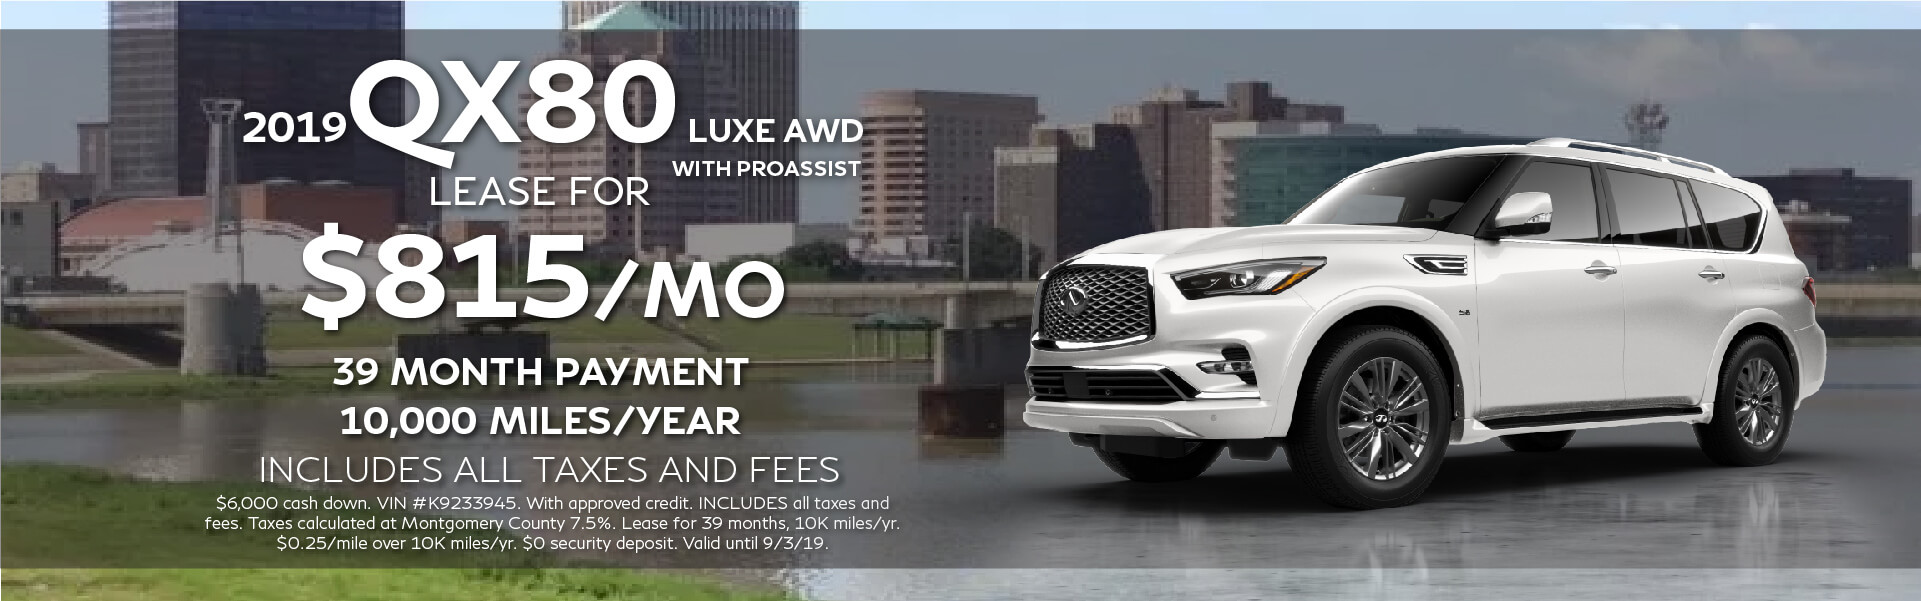 Infiniti Dealership Columbus Ohio >> Infiniti Of Dayton New Used Infiniti Dealer Serving Cincinnati